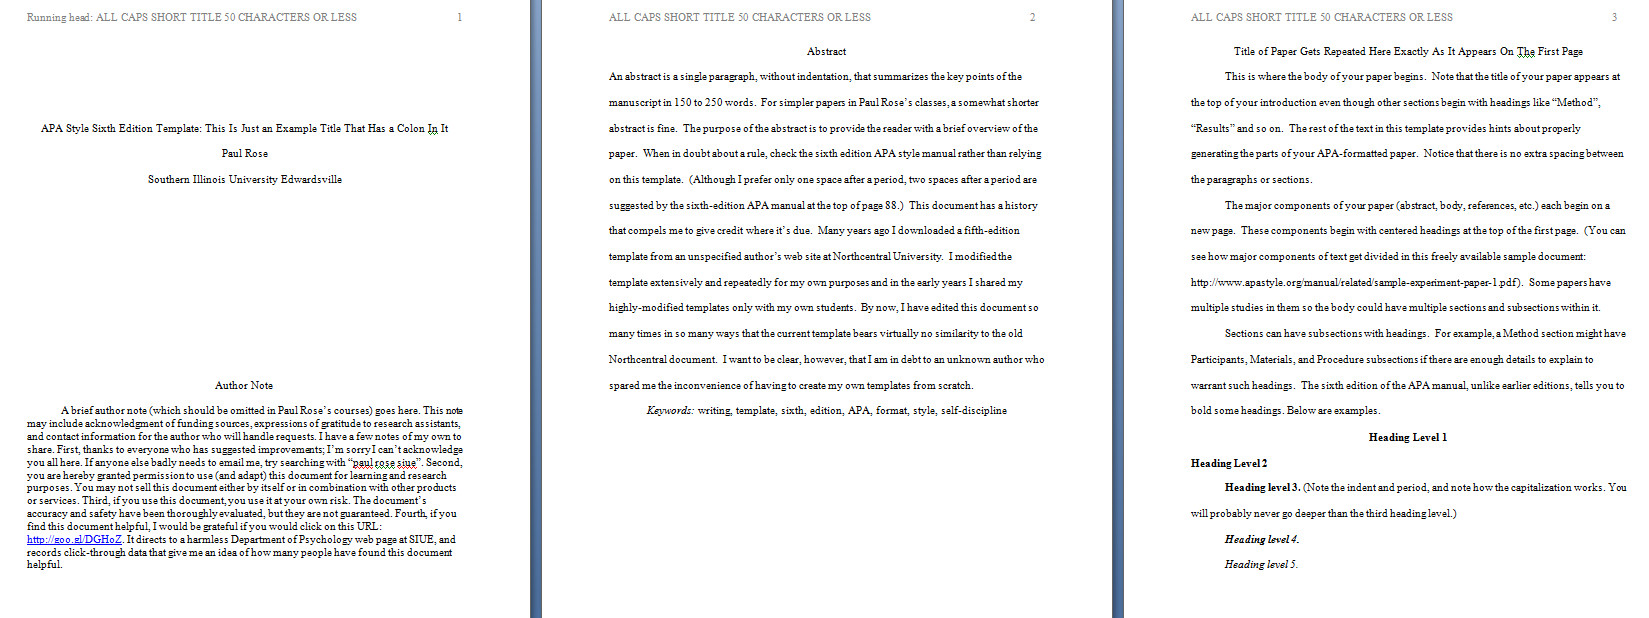 002 Apa Format Essay Template Preview Stupendous Example Title Page Sample Pdf 2017 Full